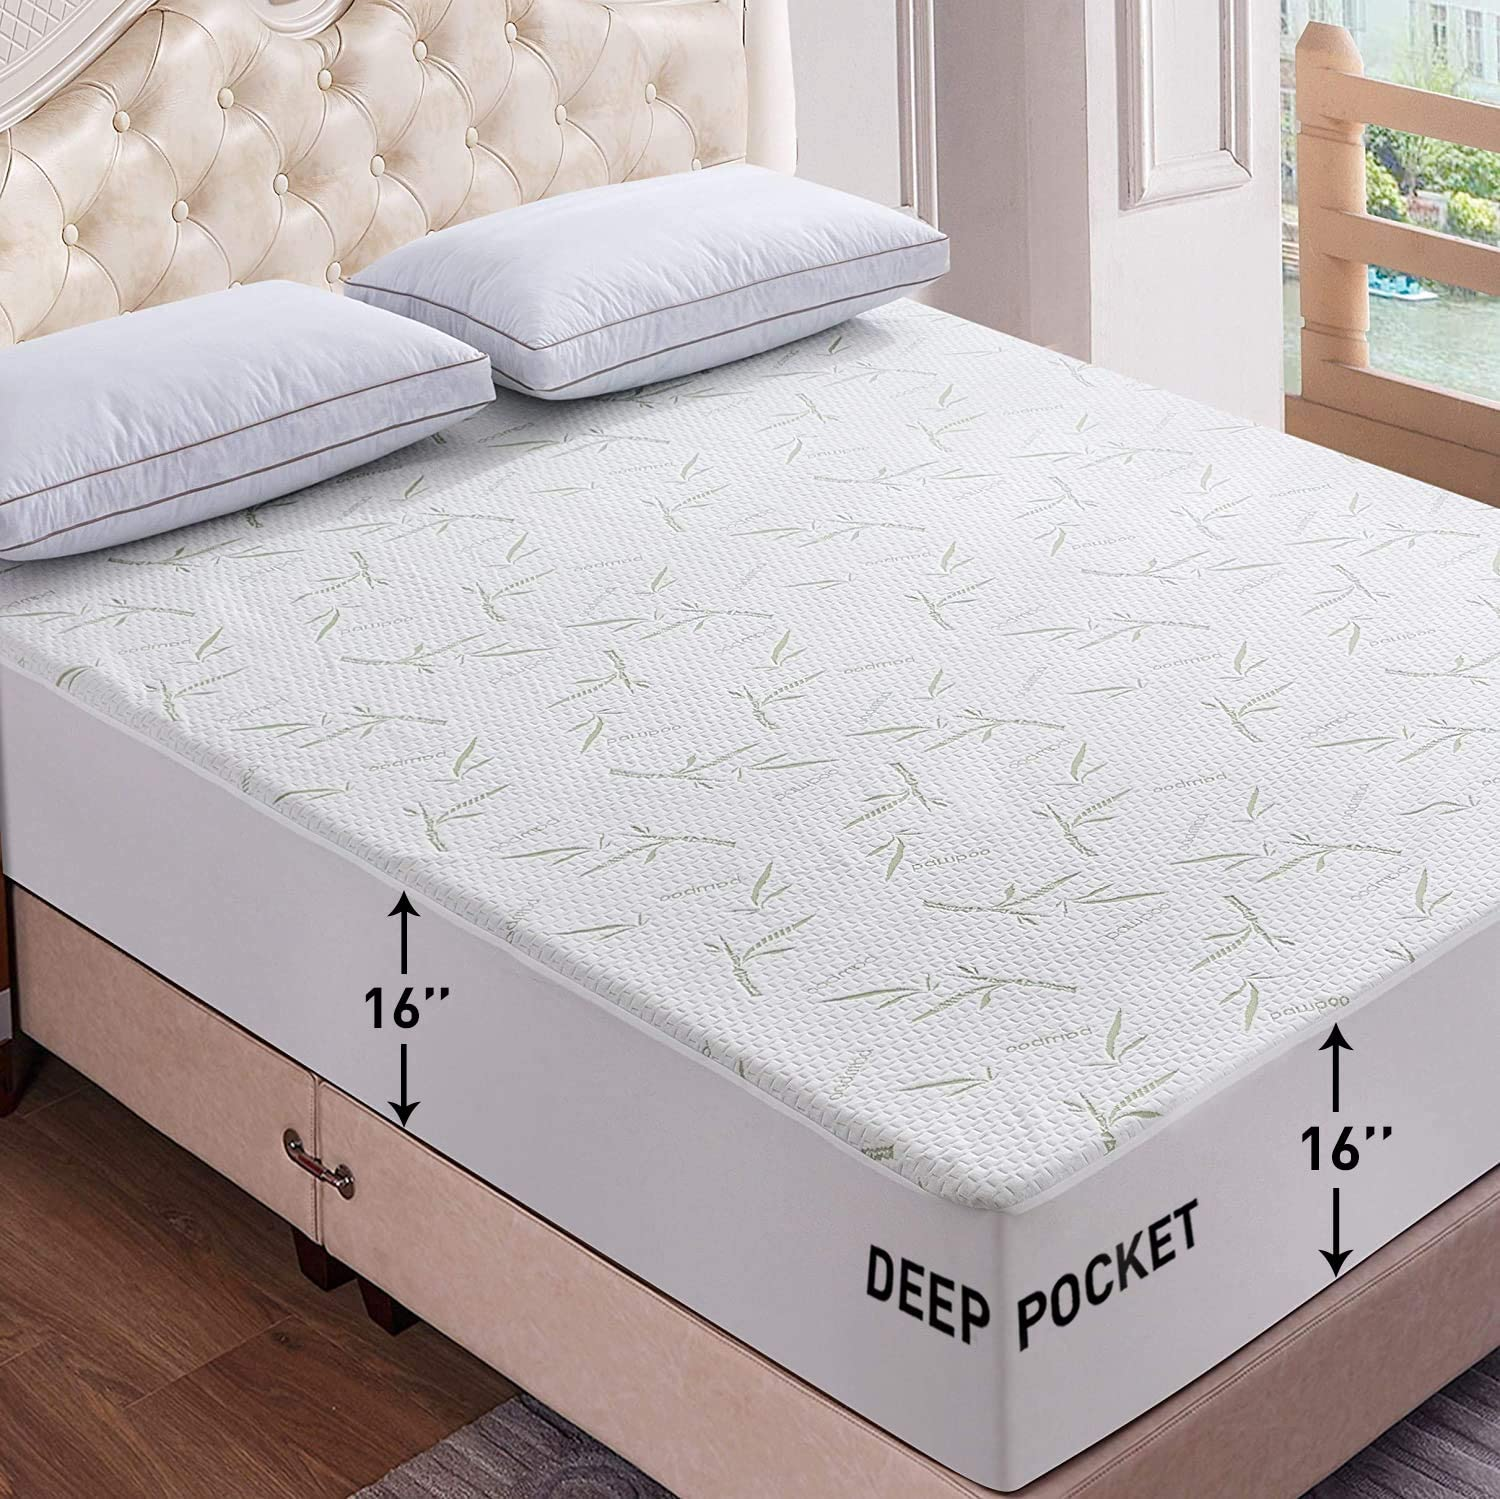 bamboo mattress protector king size breathable waterproof mattress cover hypoallergenic fitted cover with cooling fabric pillow top mattress pad